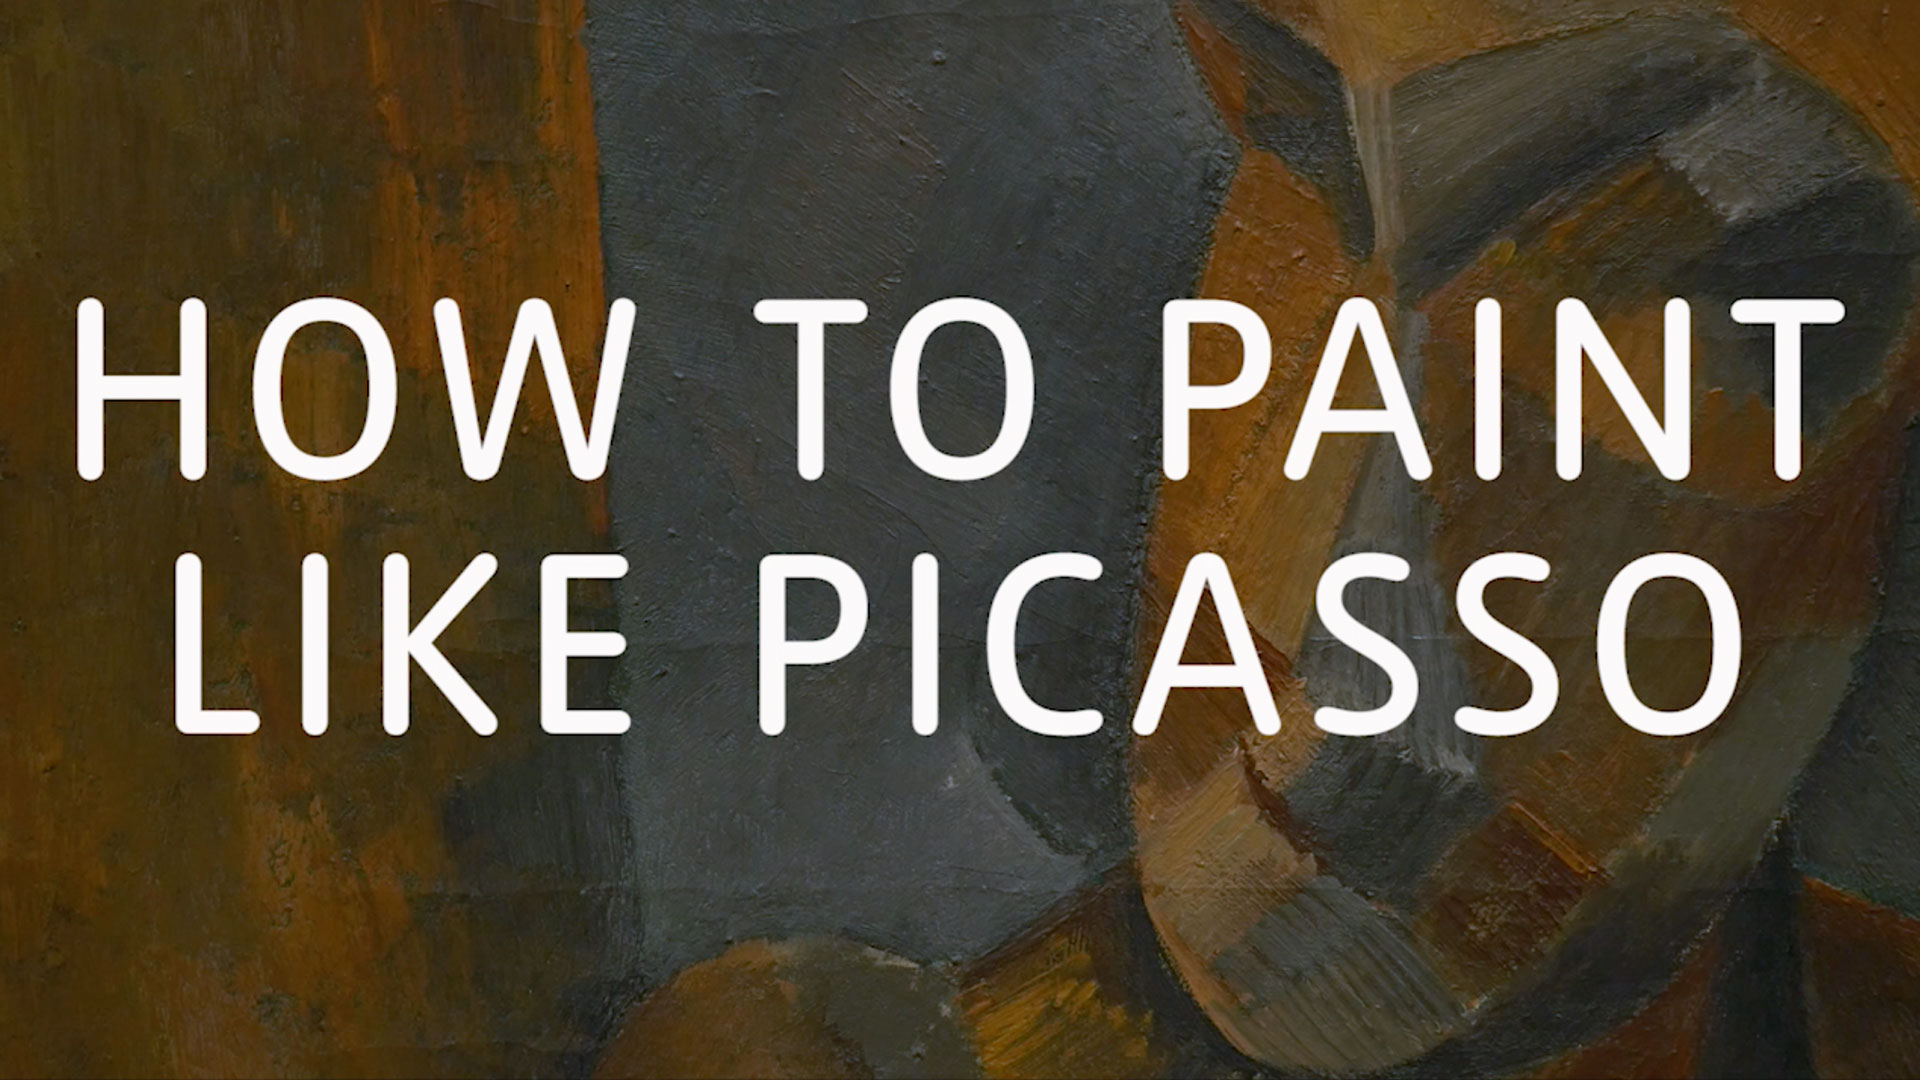 How-to-paint-like-picasso-title-16x9.jpg